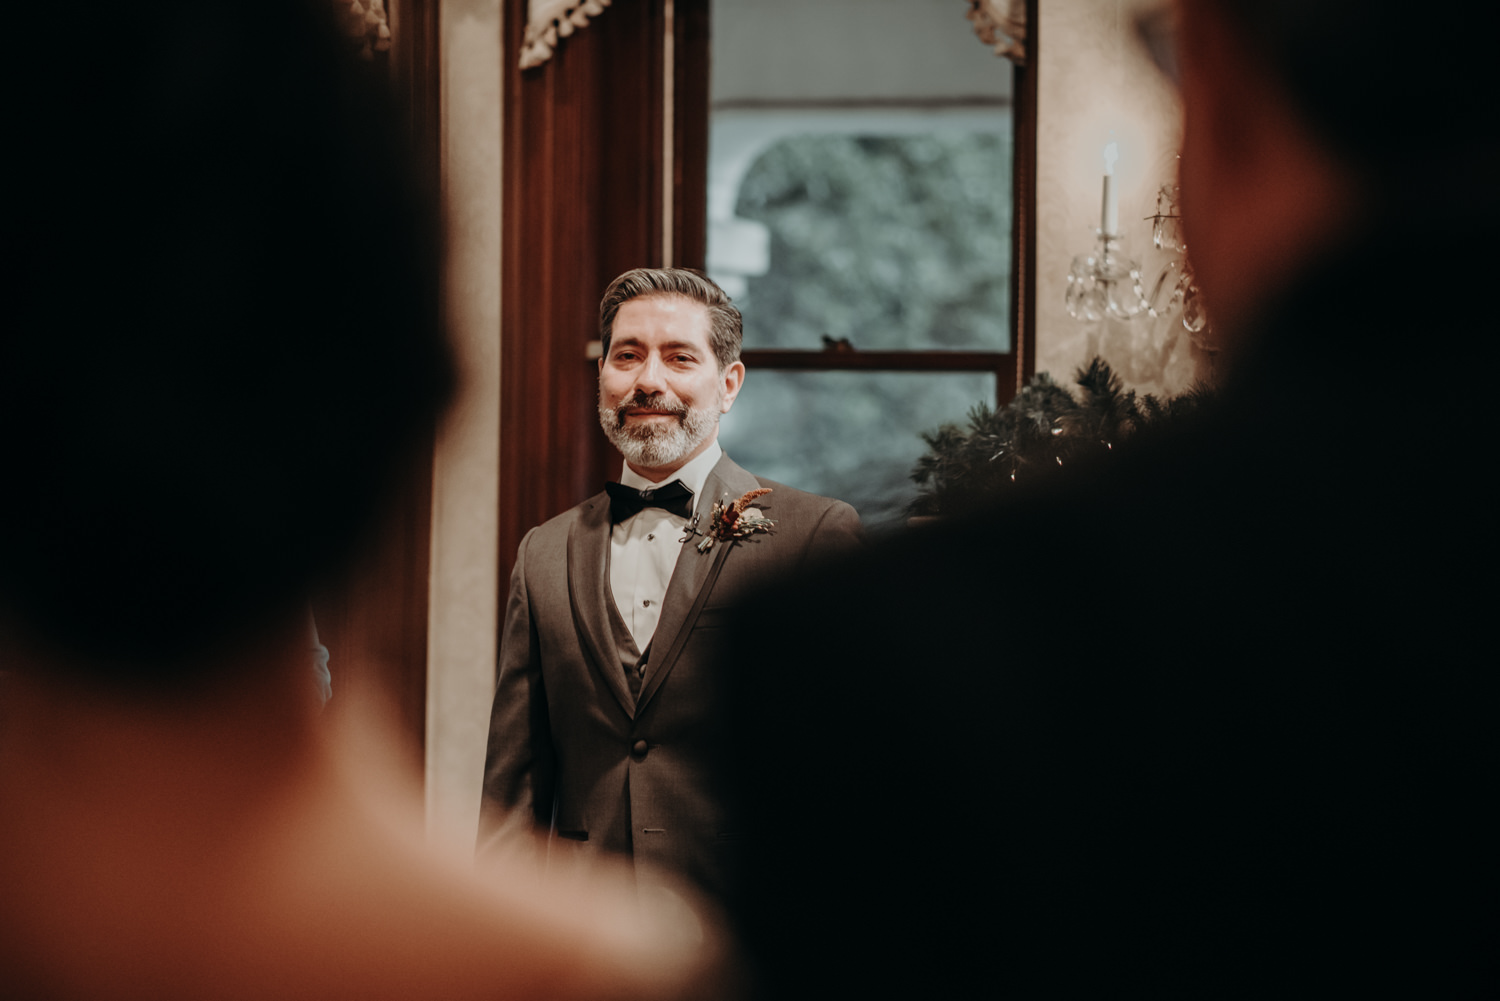 groom sees bride for the first time at wedding